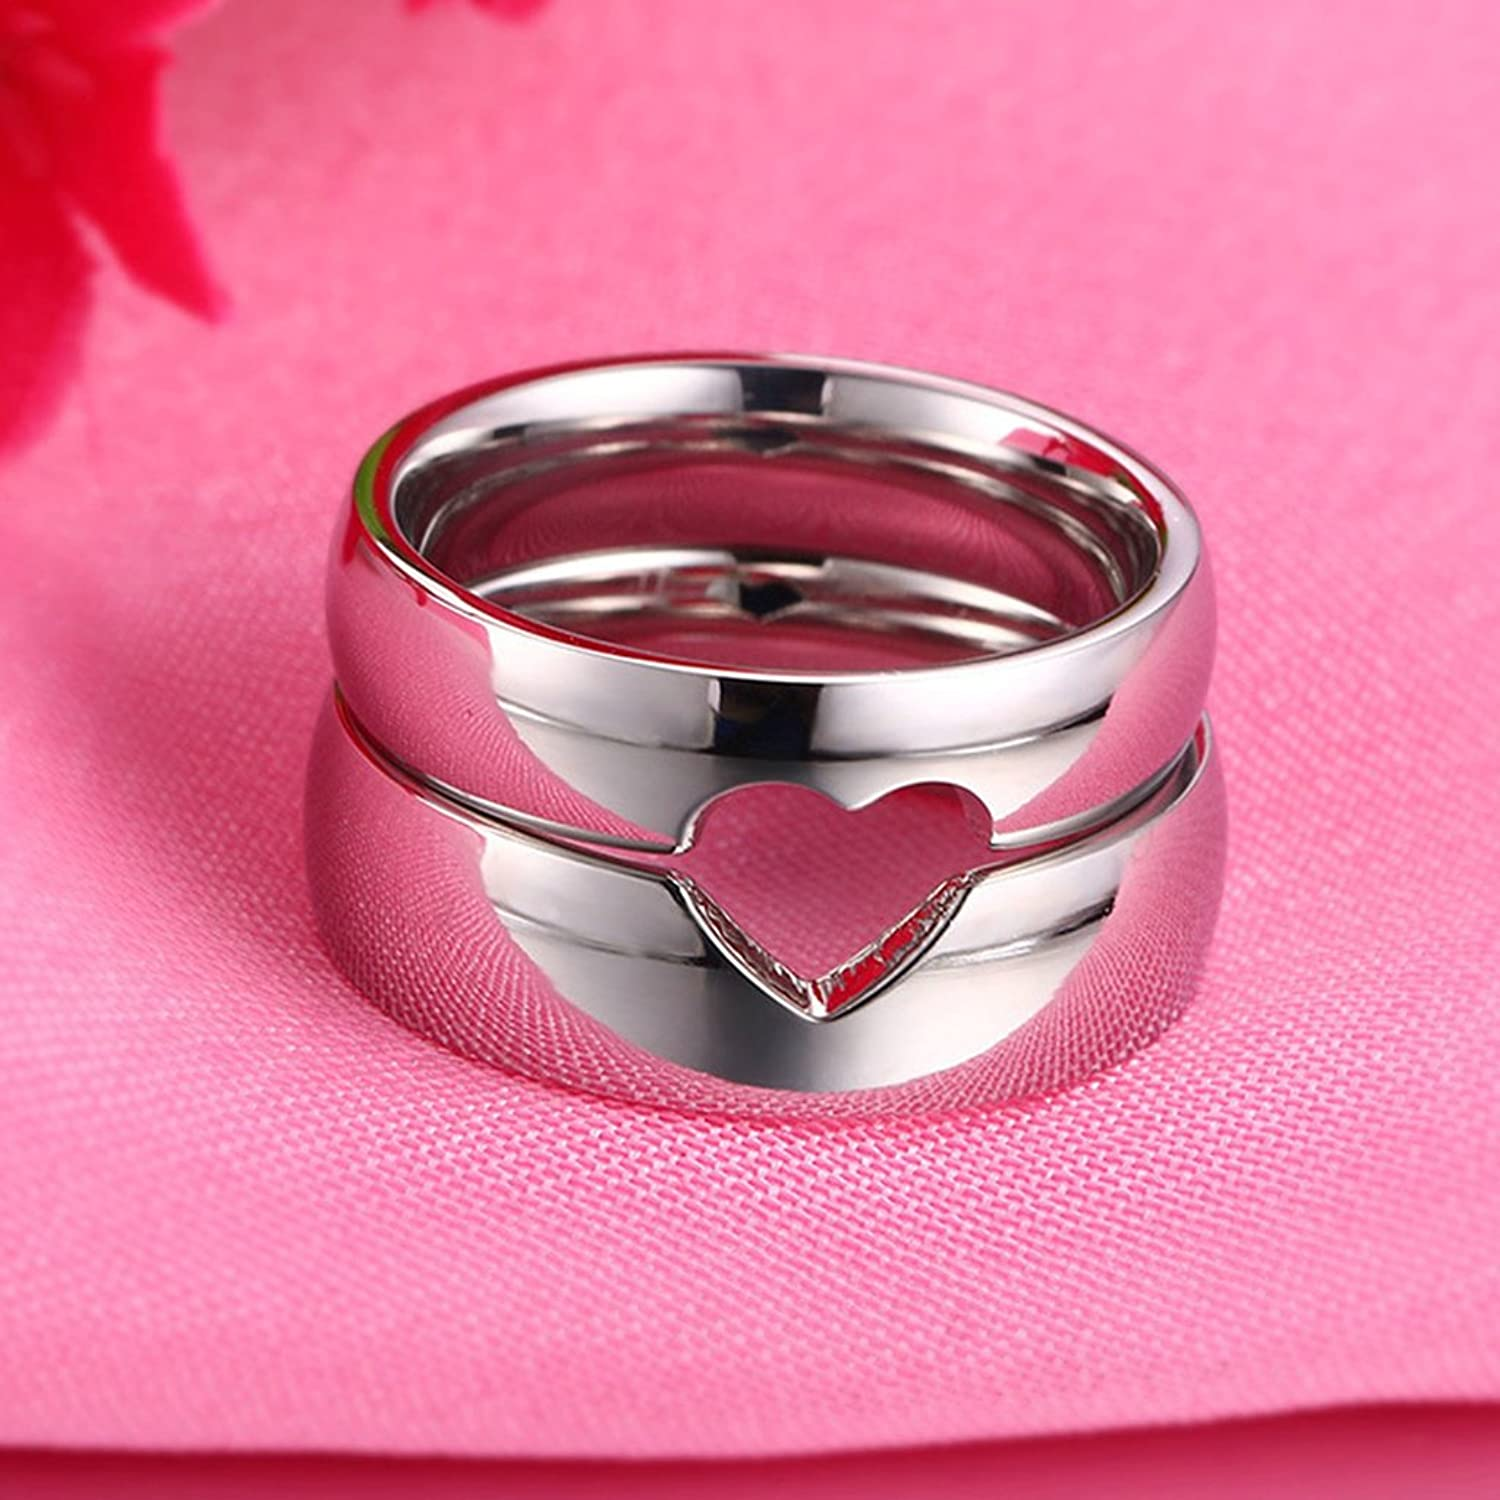 AnaZoz Stainless Steel Wedding Ring And Band Women Size 5 & Men Size ...